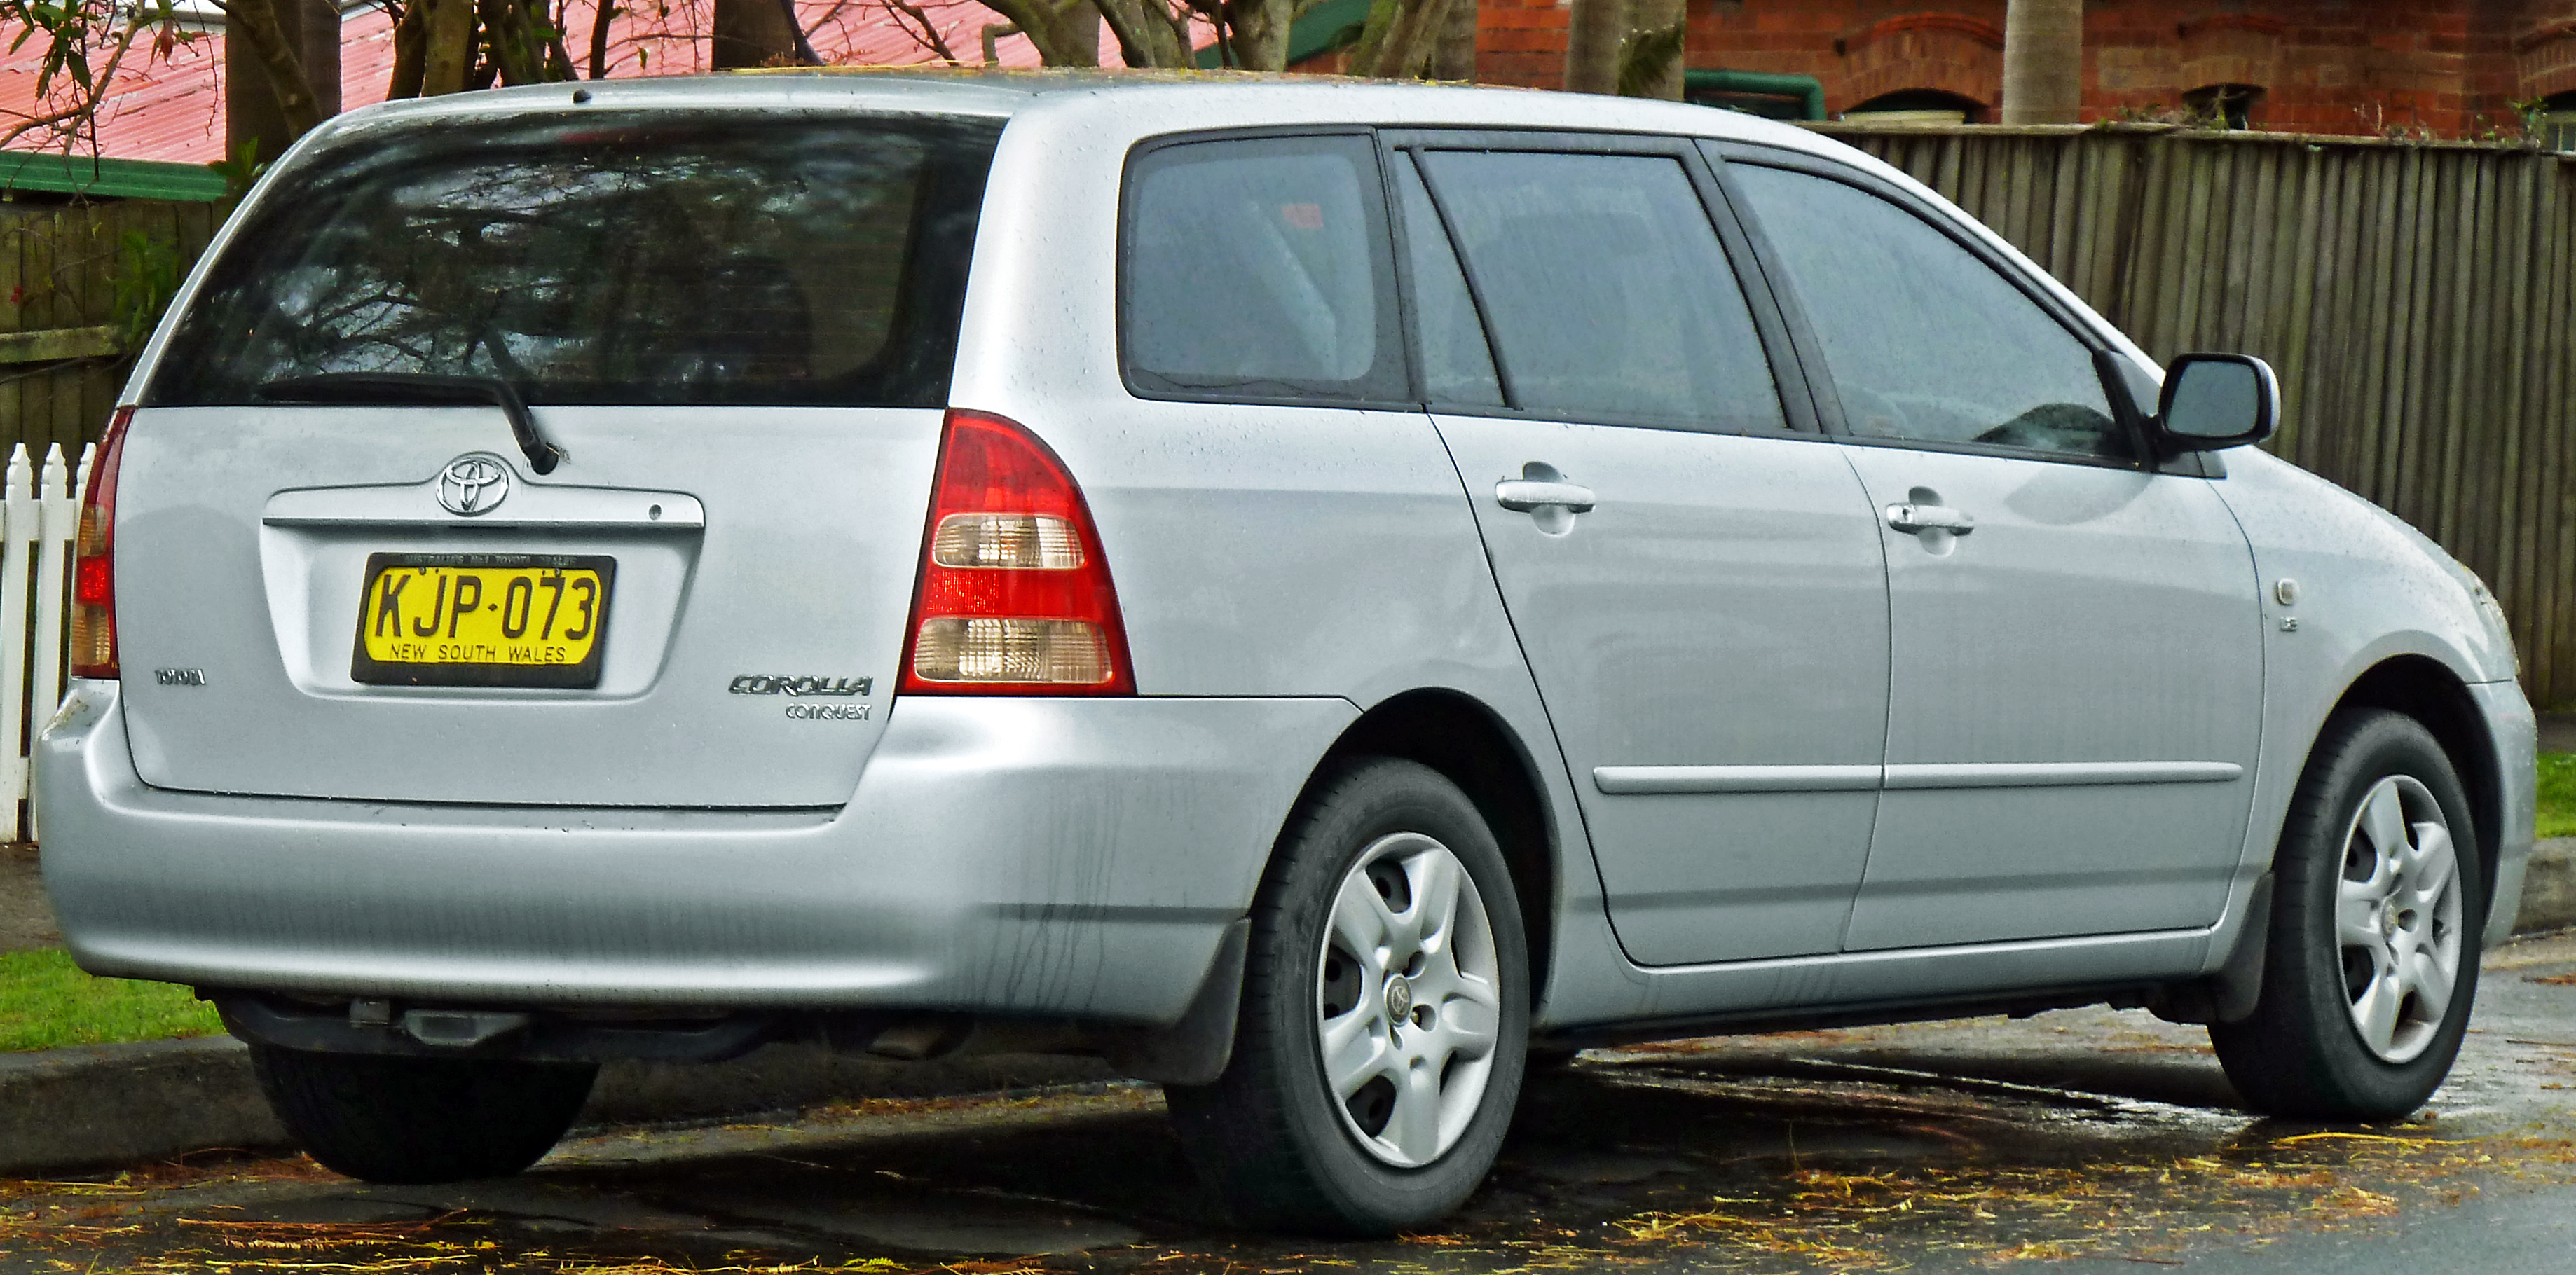 file:2001-2003 toyota corolla (zze122r) conquest station wagon